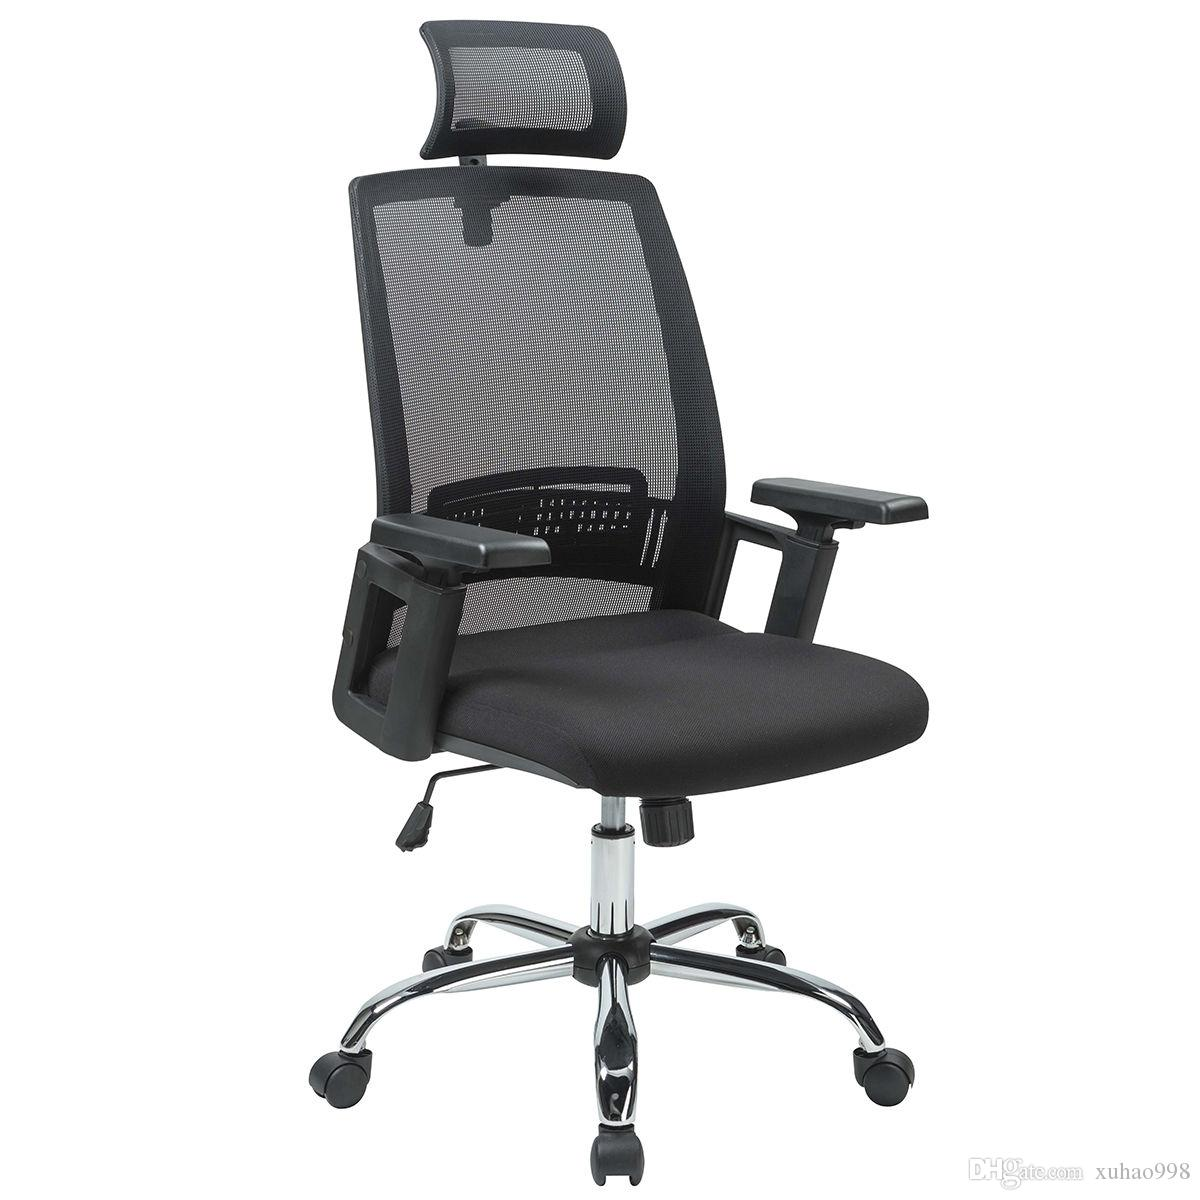 2018 New Black Ergonomic Desk Task Office Chair High Back Executive Computer Chair From Xuhao998 $50.26 | Dhgate.Com  sc 1 st  DHgate.com & 2018 New Black Ergonomic Desk Task Office Chair High Back Executive ...